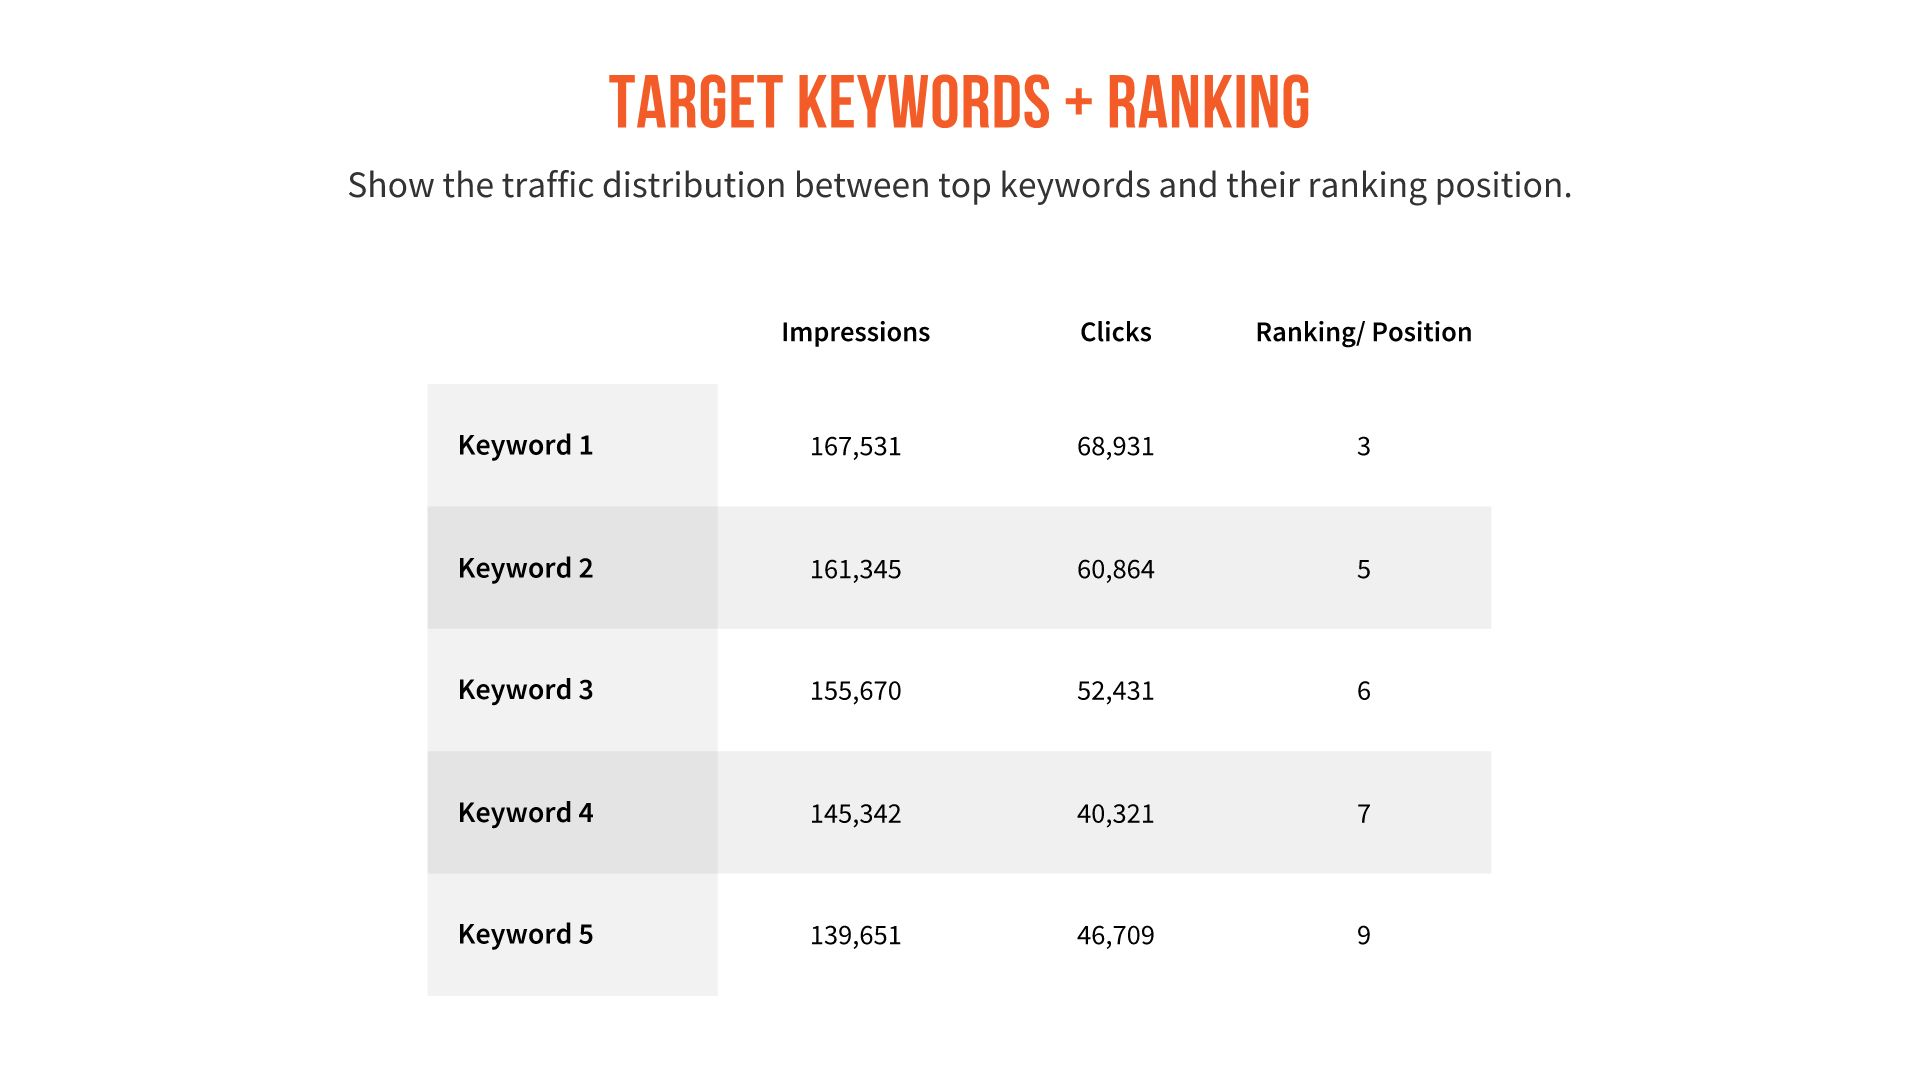 Target Keywords and Ranking